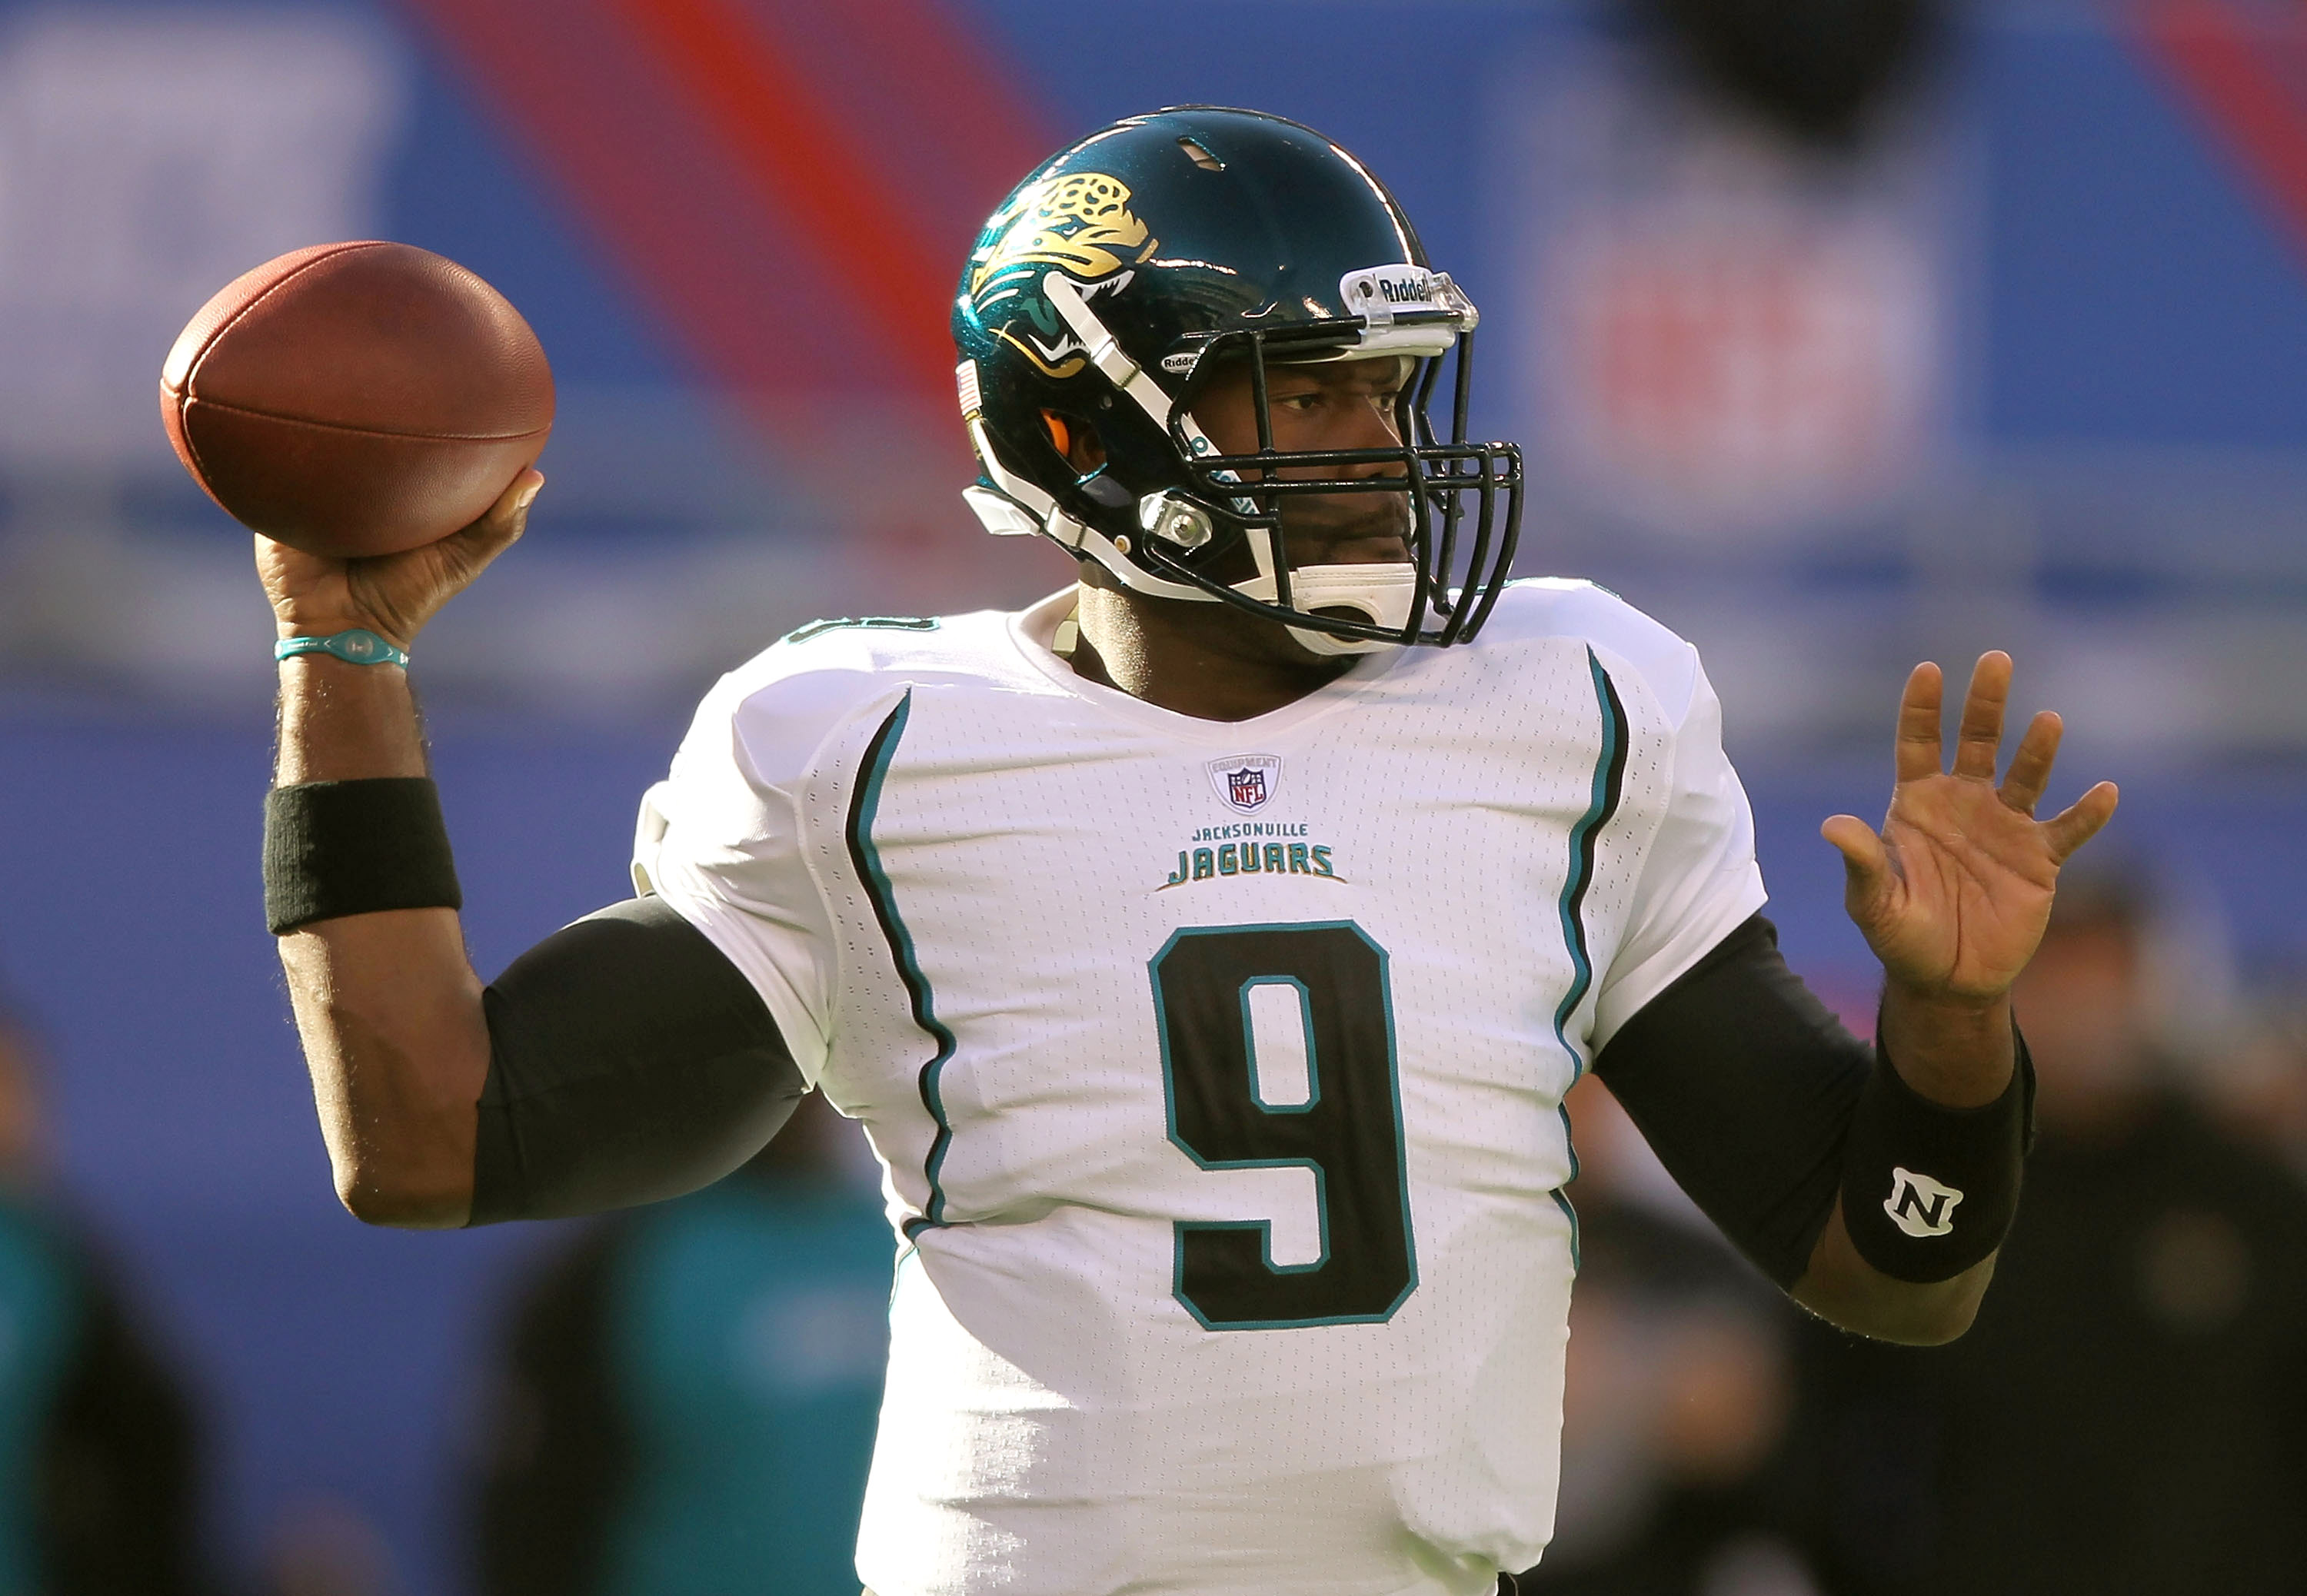 EAST RUTHERFORD, NJ - NOVEMBER 28:  David Garrard #9 of the Jacksonville Jaguars passes the ball against  the New York Giants during the second Quarter of their game on November 28, 2010 at The New Meadowlands Stadium in East Rutherford, New Jersey.  (Pho